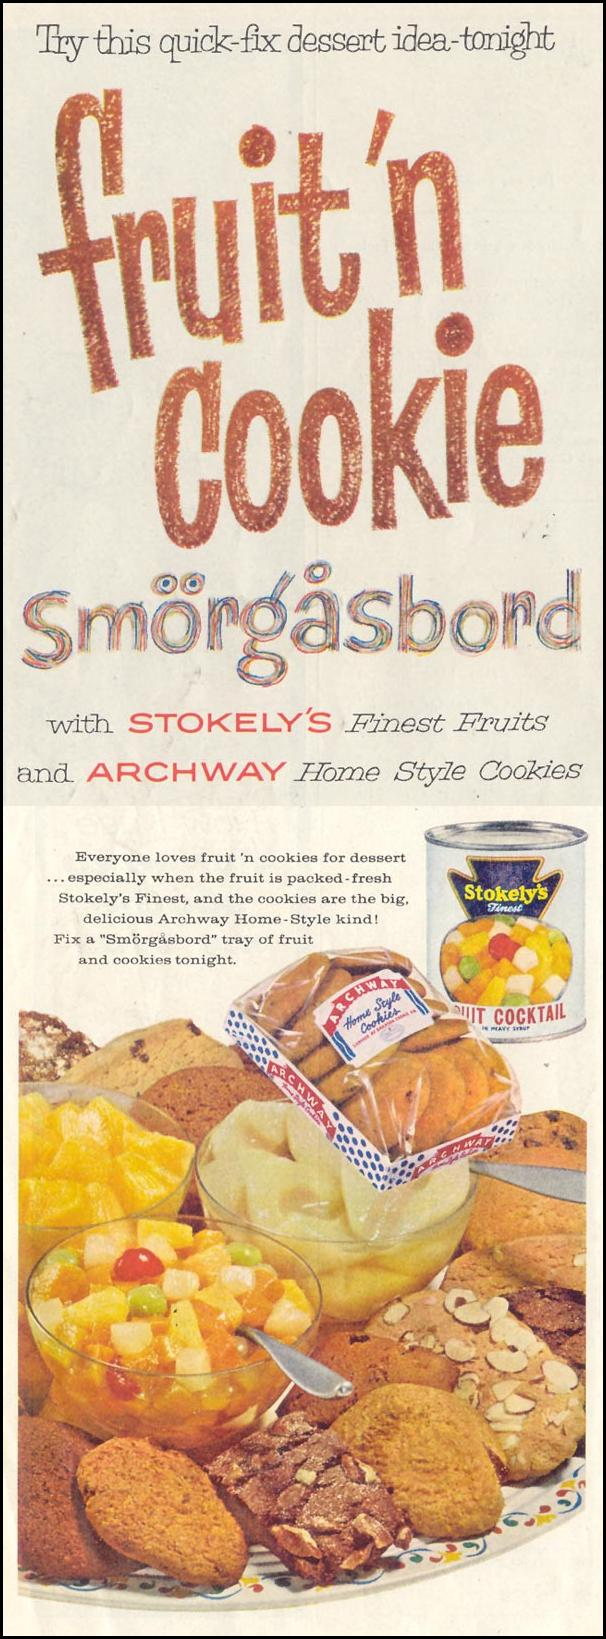 ARCHWAY COOKIES SATURDAY EVENING POST 05/02/1959 p. 4